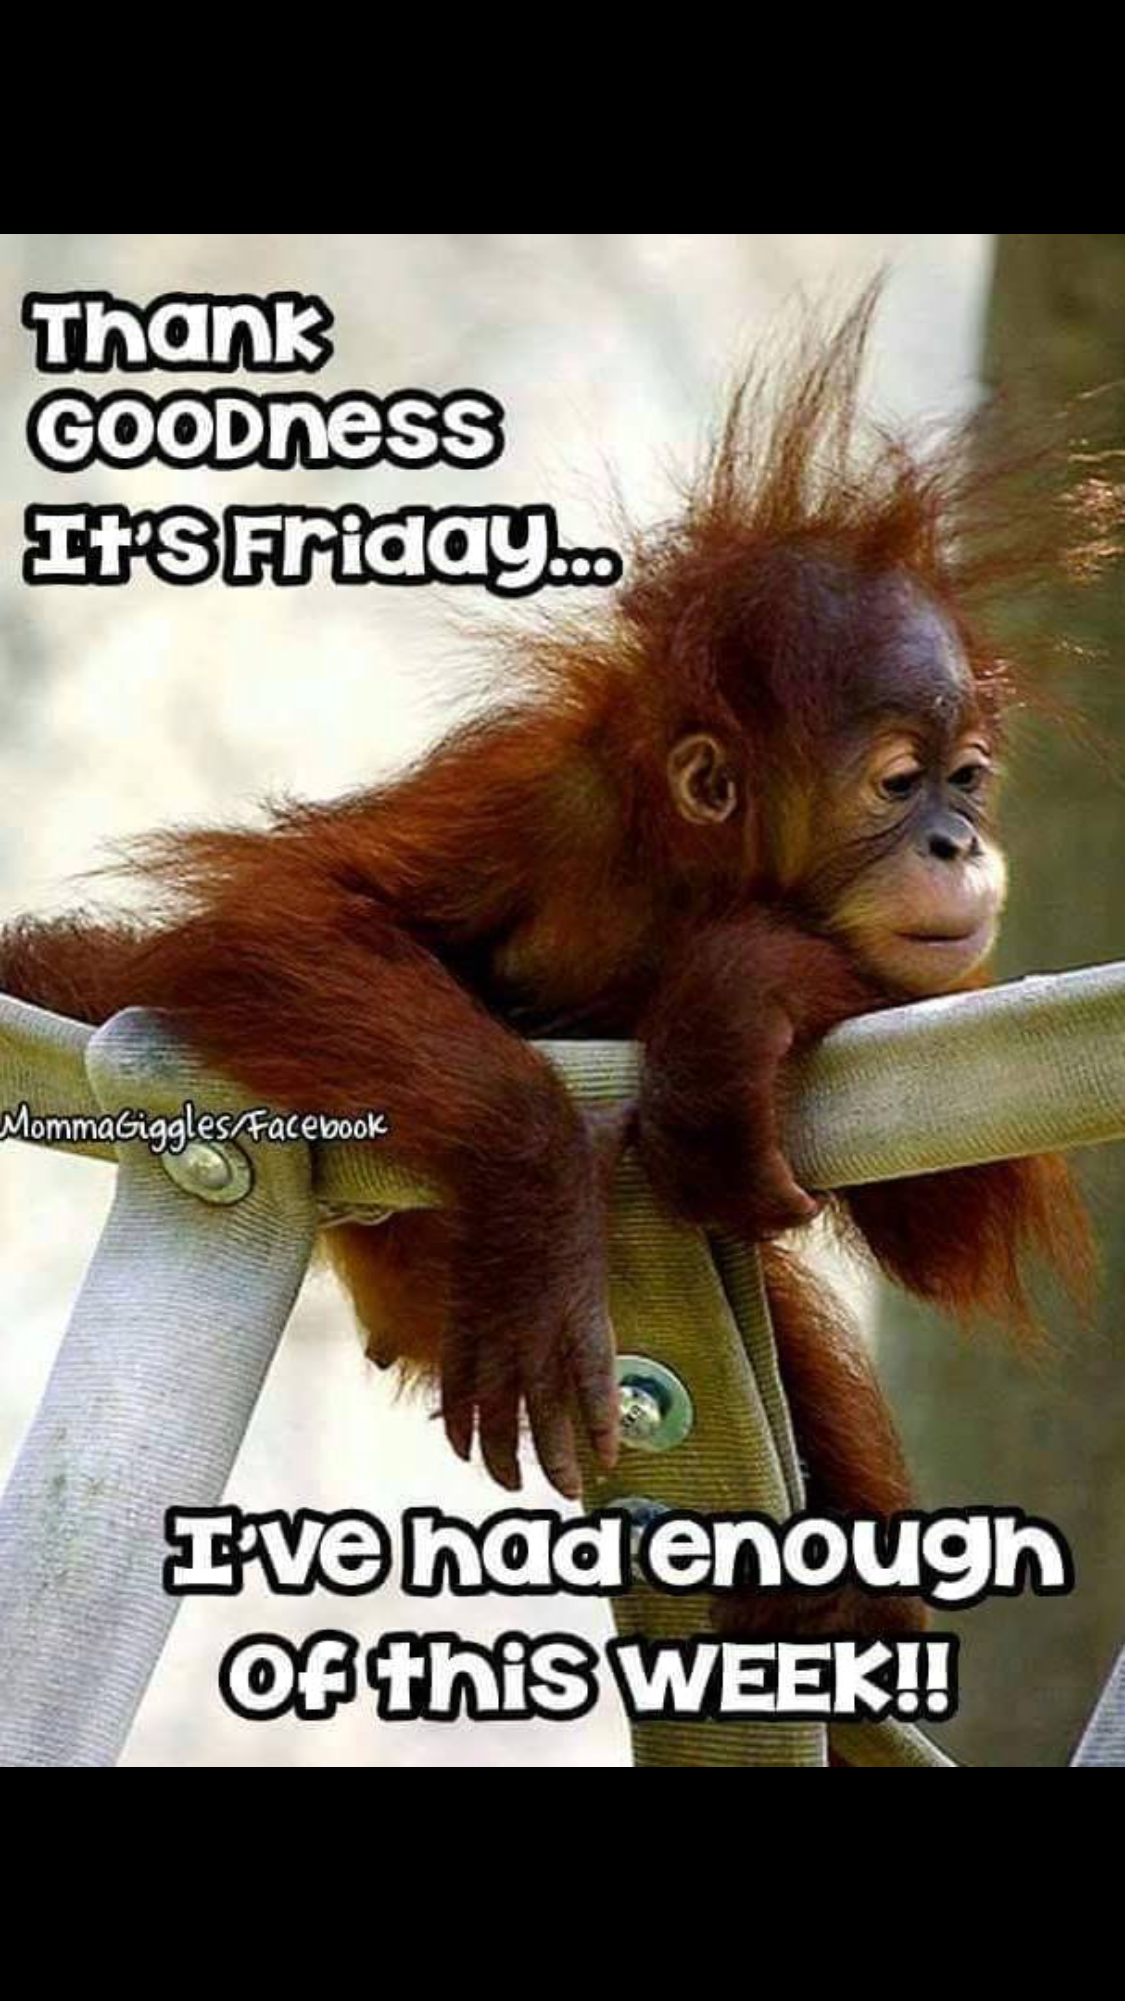 Me too buddy, me too 👋 | Friday humor, Funny good morning ...